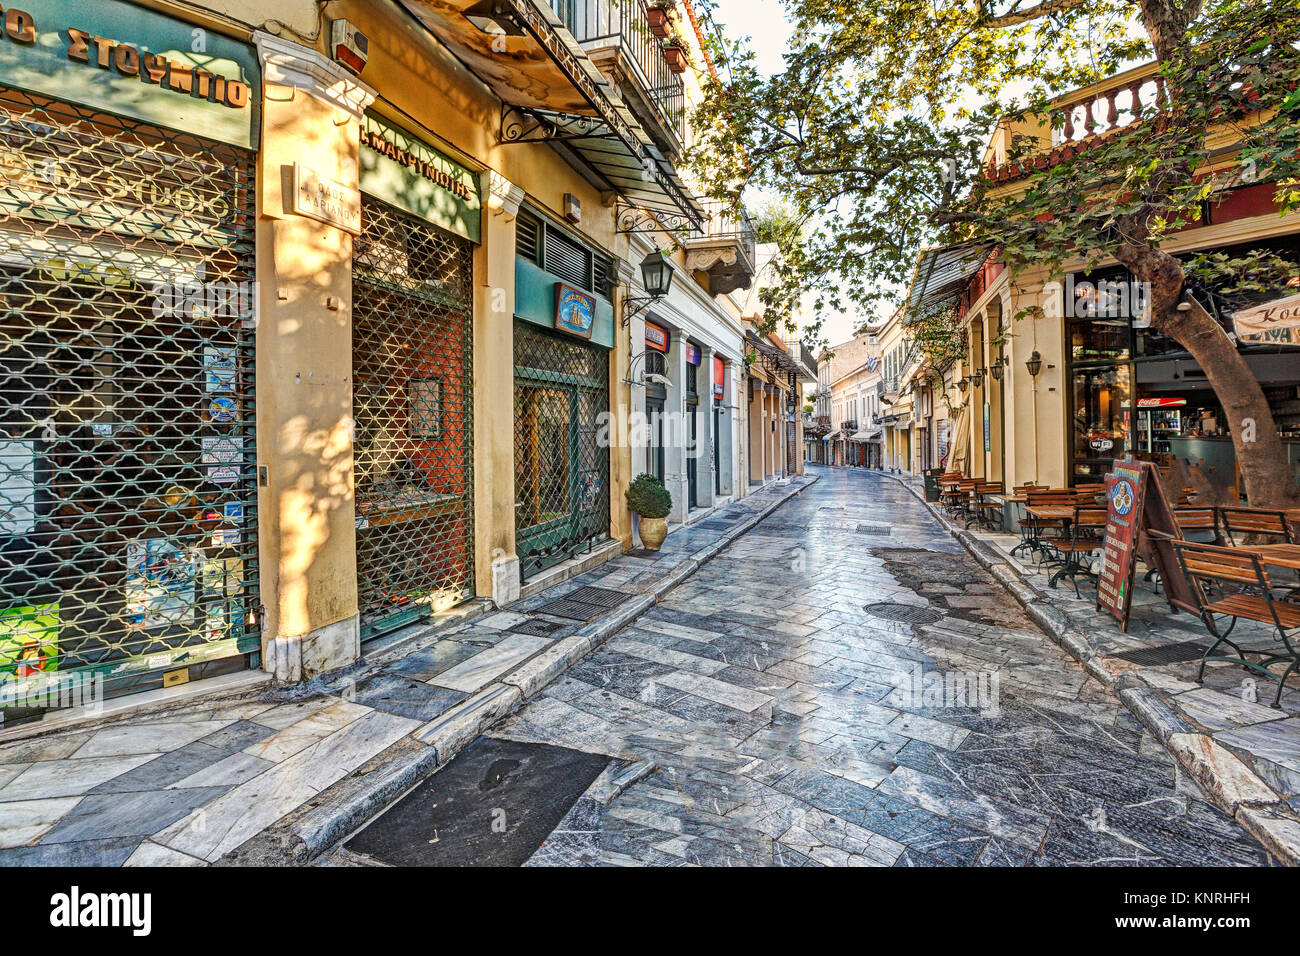 The picturesque buildings of Plaka in Athens, Greece - Stock Image